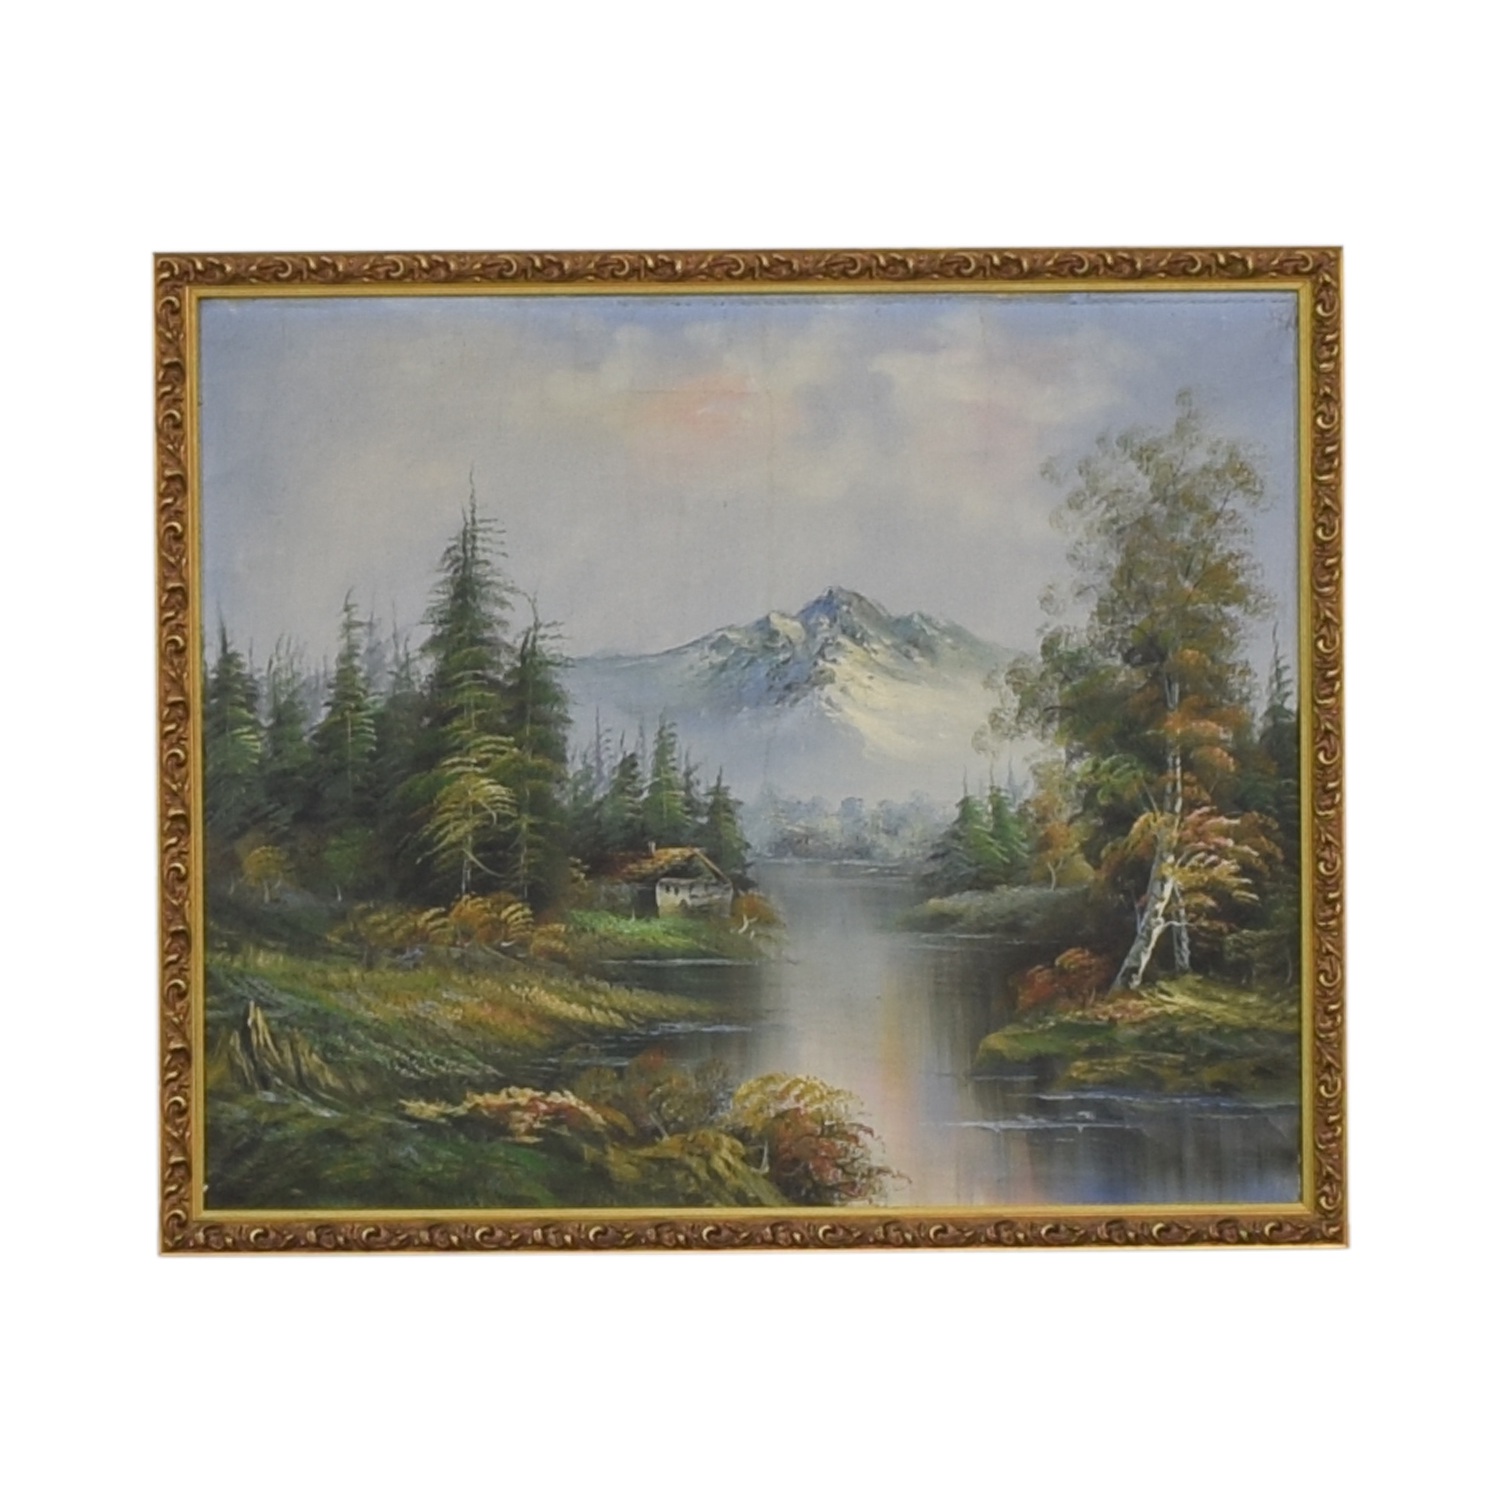 Mountain Landscape Framed Wall Art used